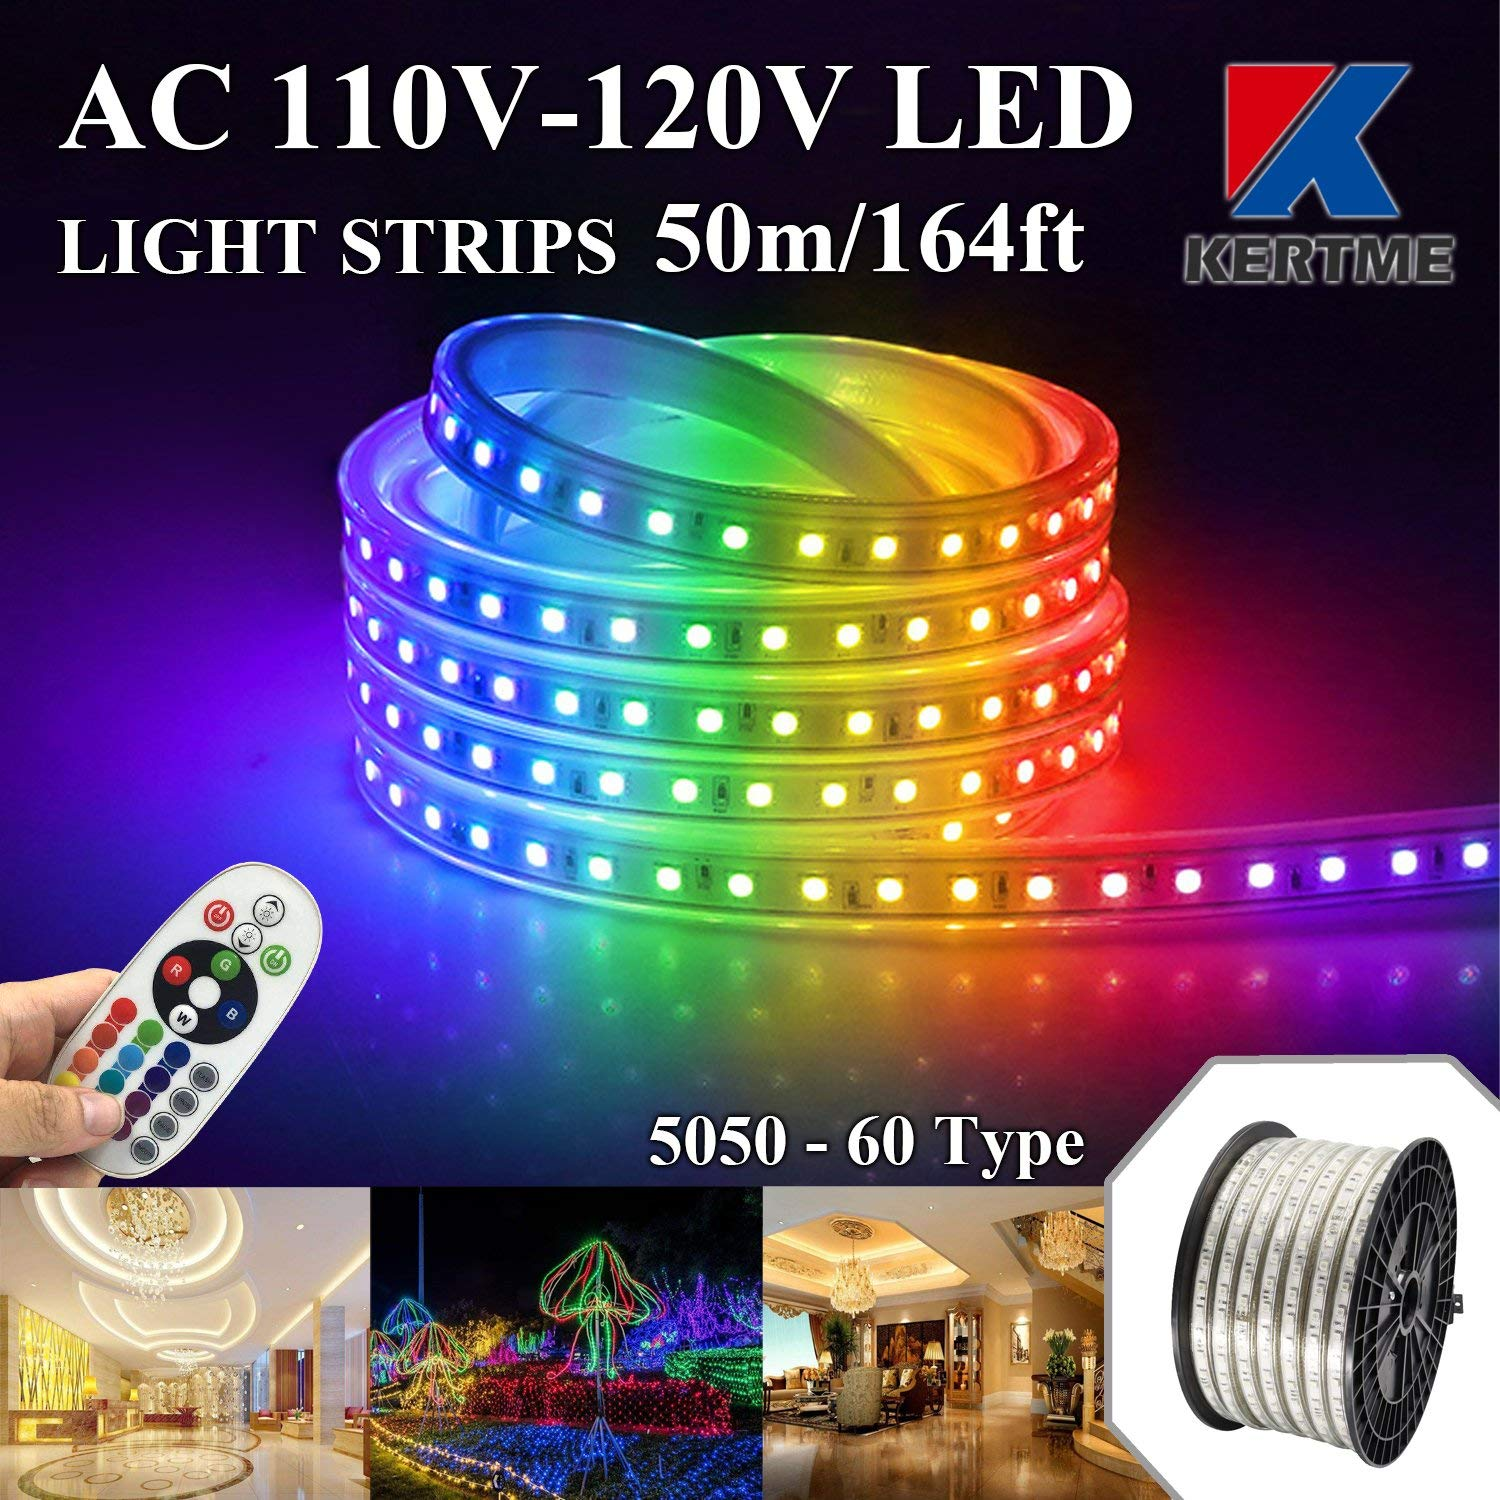 KERTME 5050-60 Type AC 110-120V RGB LED Strip Lights, Flexible/Waterproof/Dimmable/Multi-Colors/Multi-Modes LED Rope Light + 24 keys Remote for Home/Garden/Building Decoration (164ft/50m, RGB)